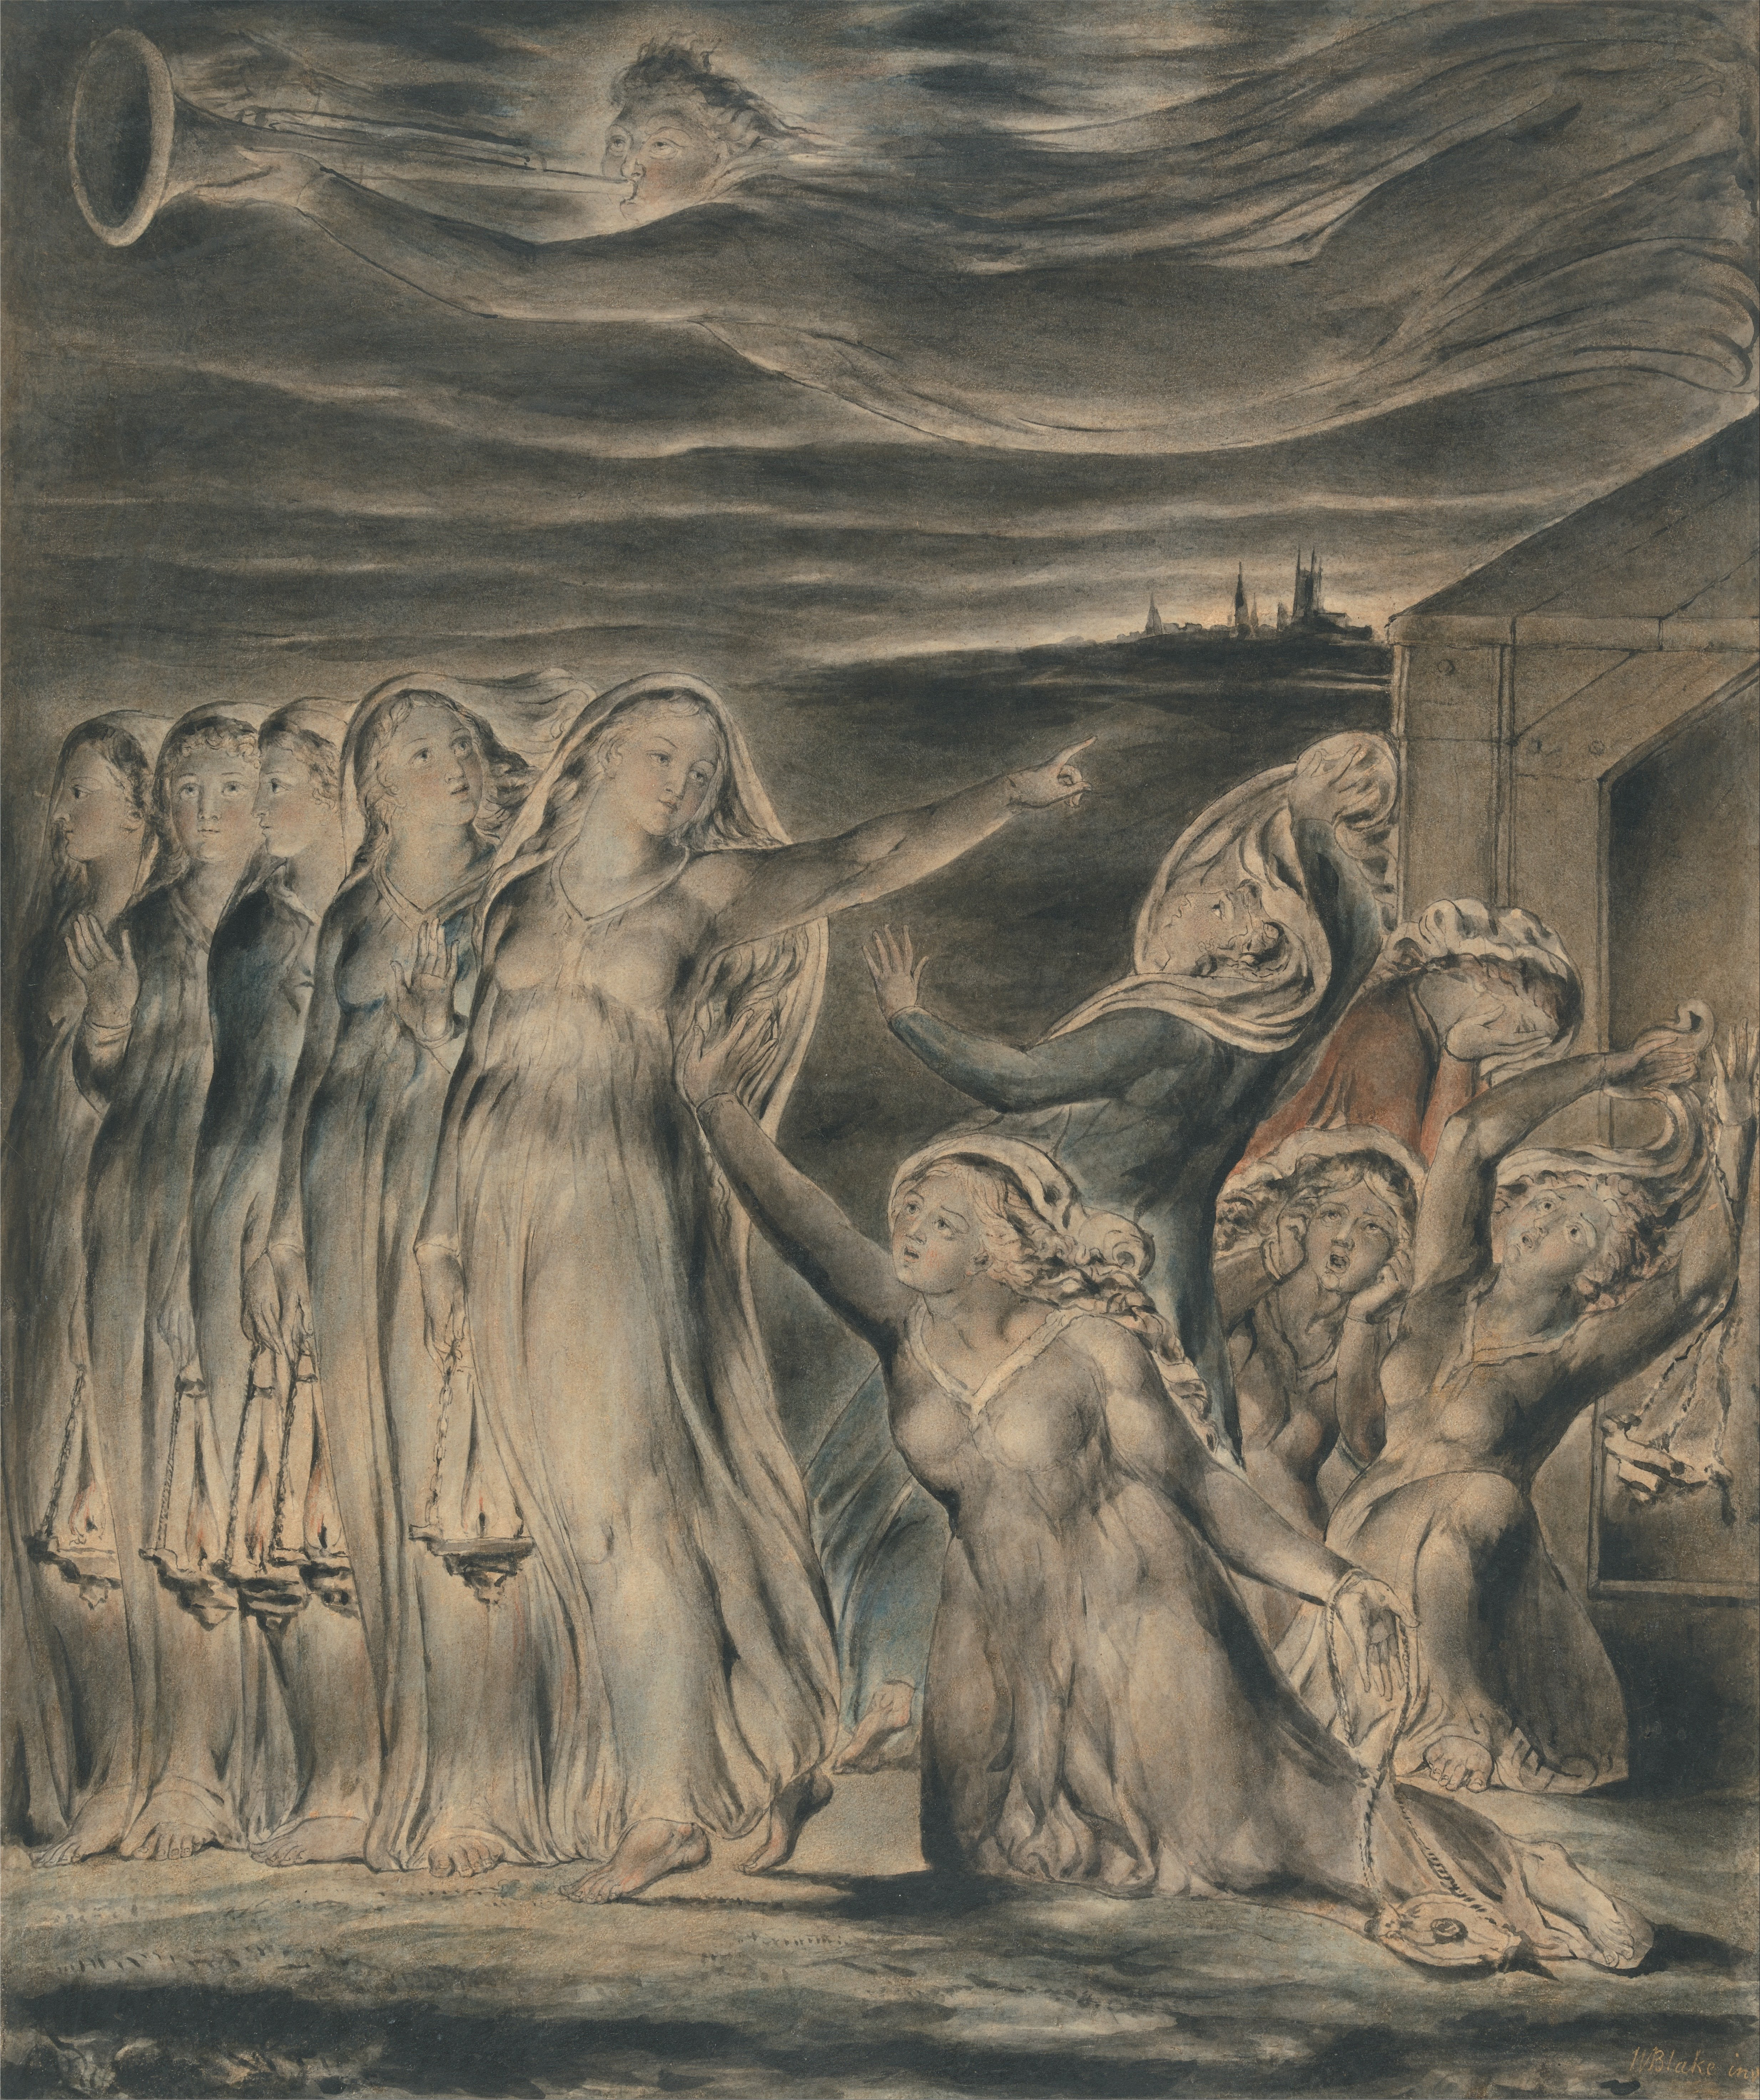 William_Blake_-_The_Parable_of_the_Wise_and_Foolish_Virgins